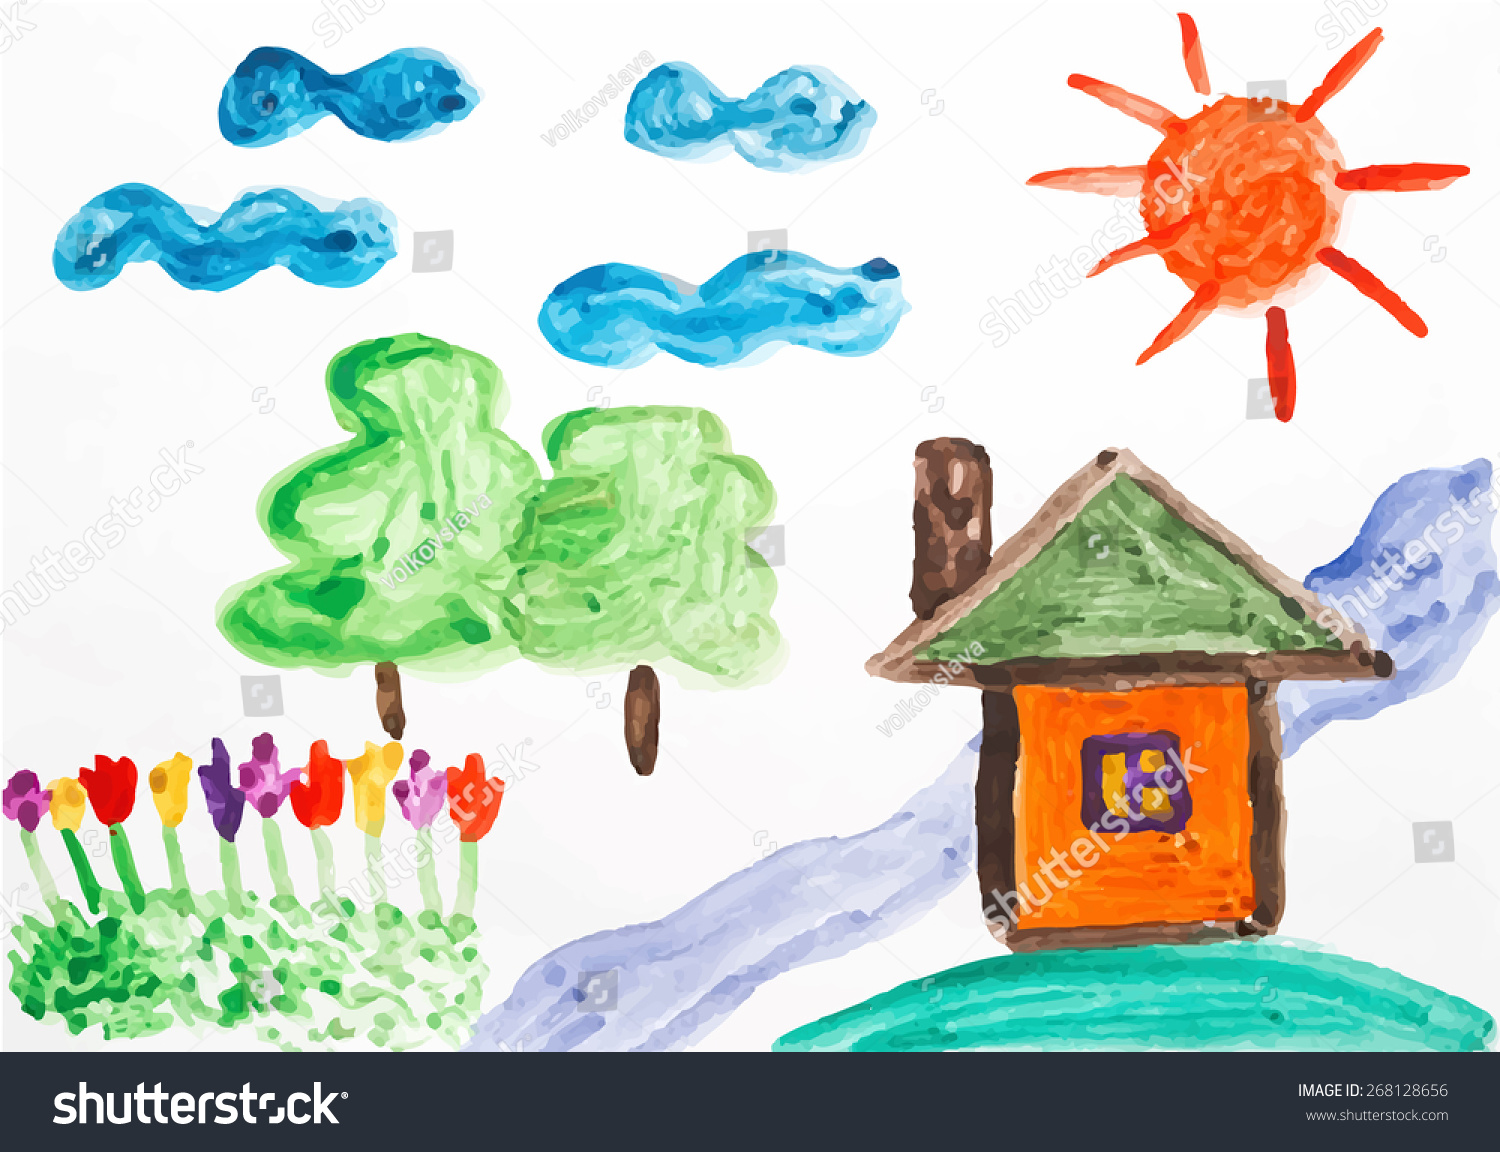 Child picturesque coloured drawing on paper paint the house the sun flowers